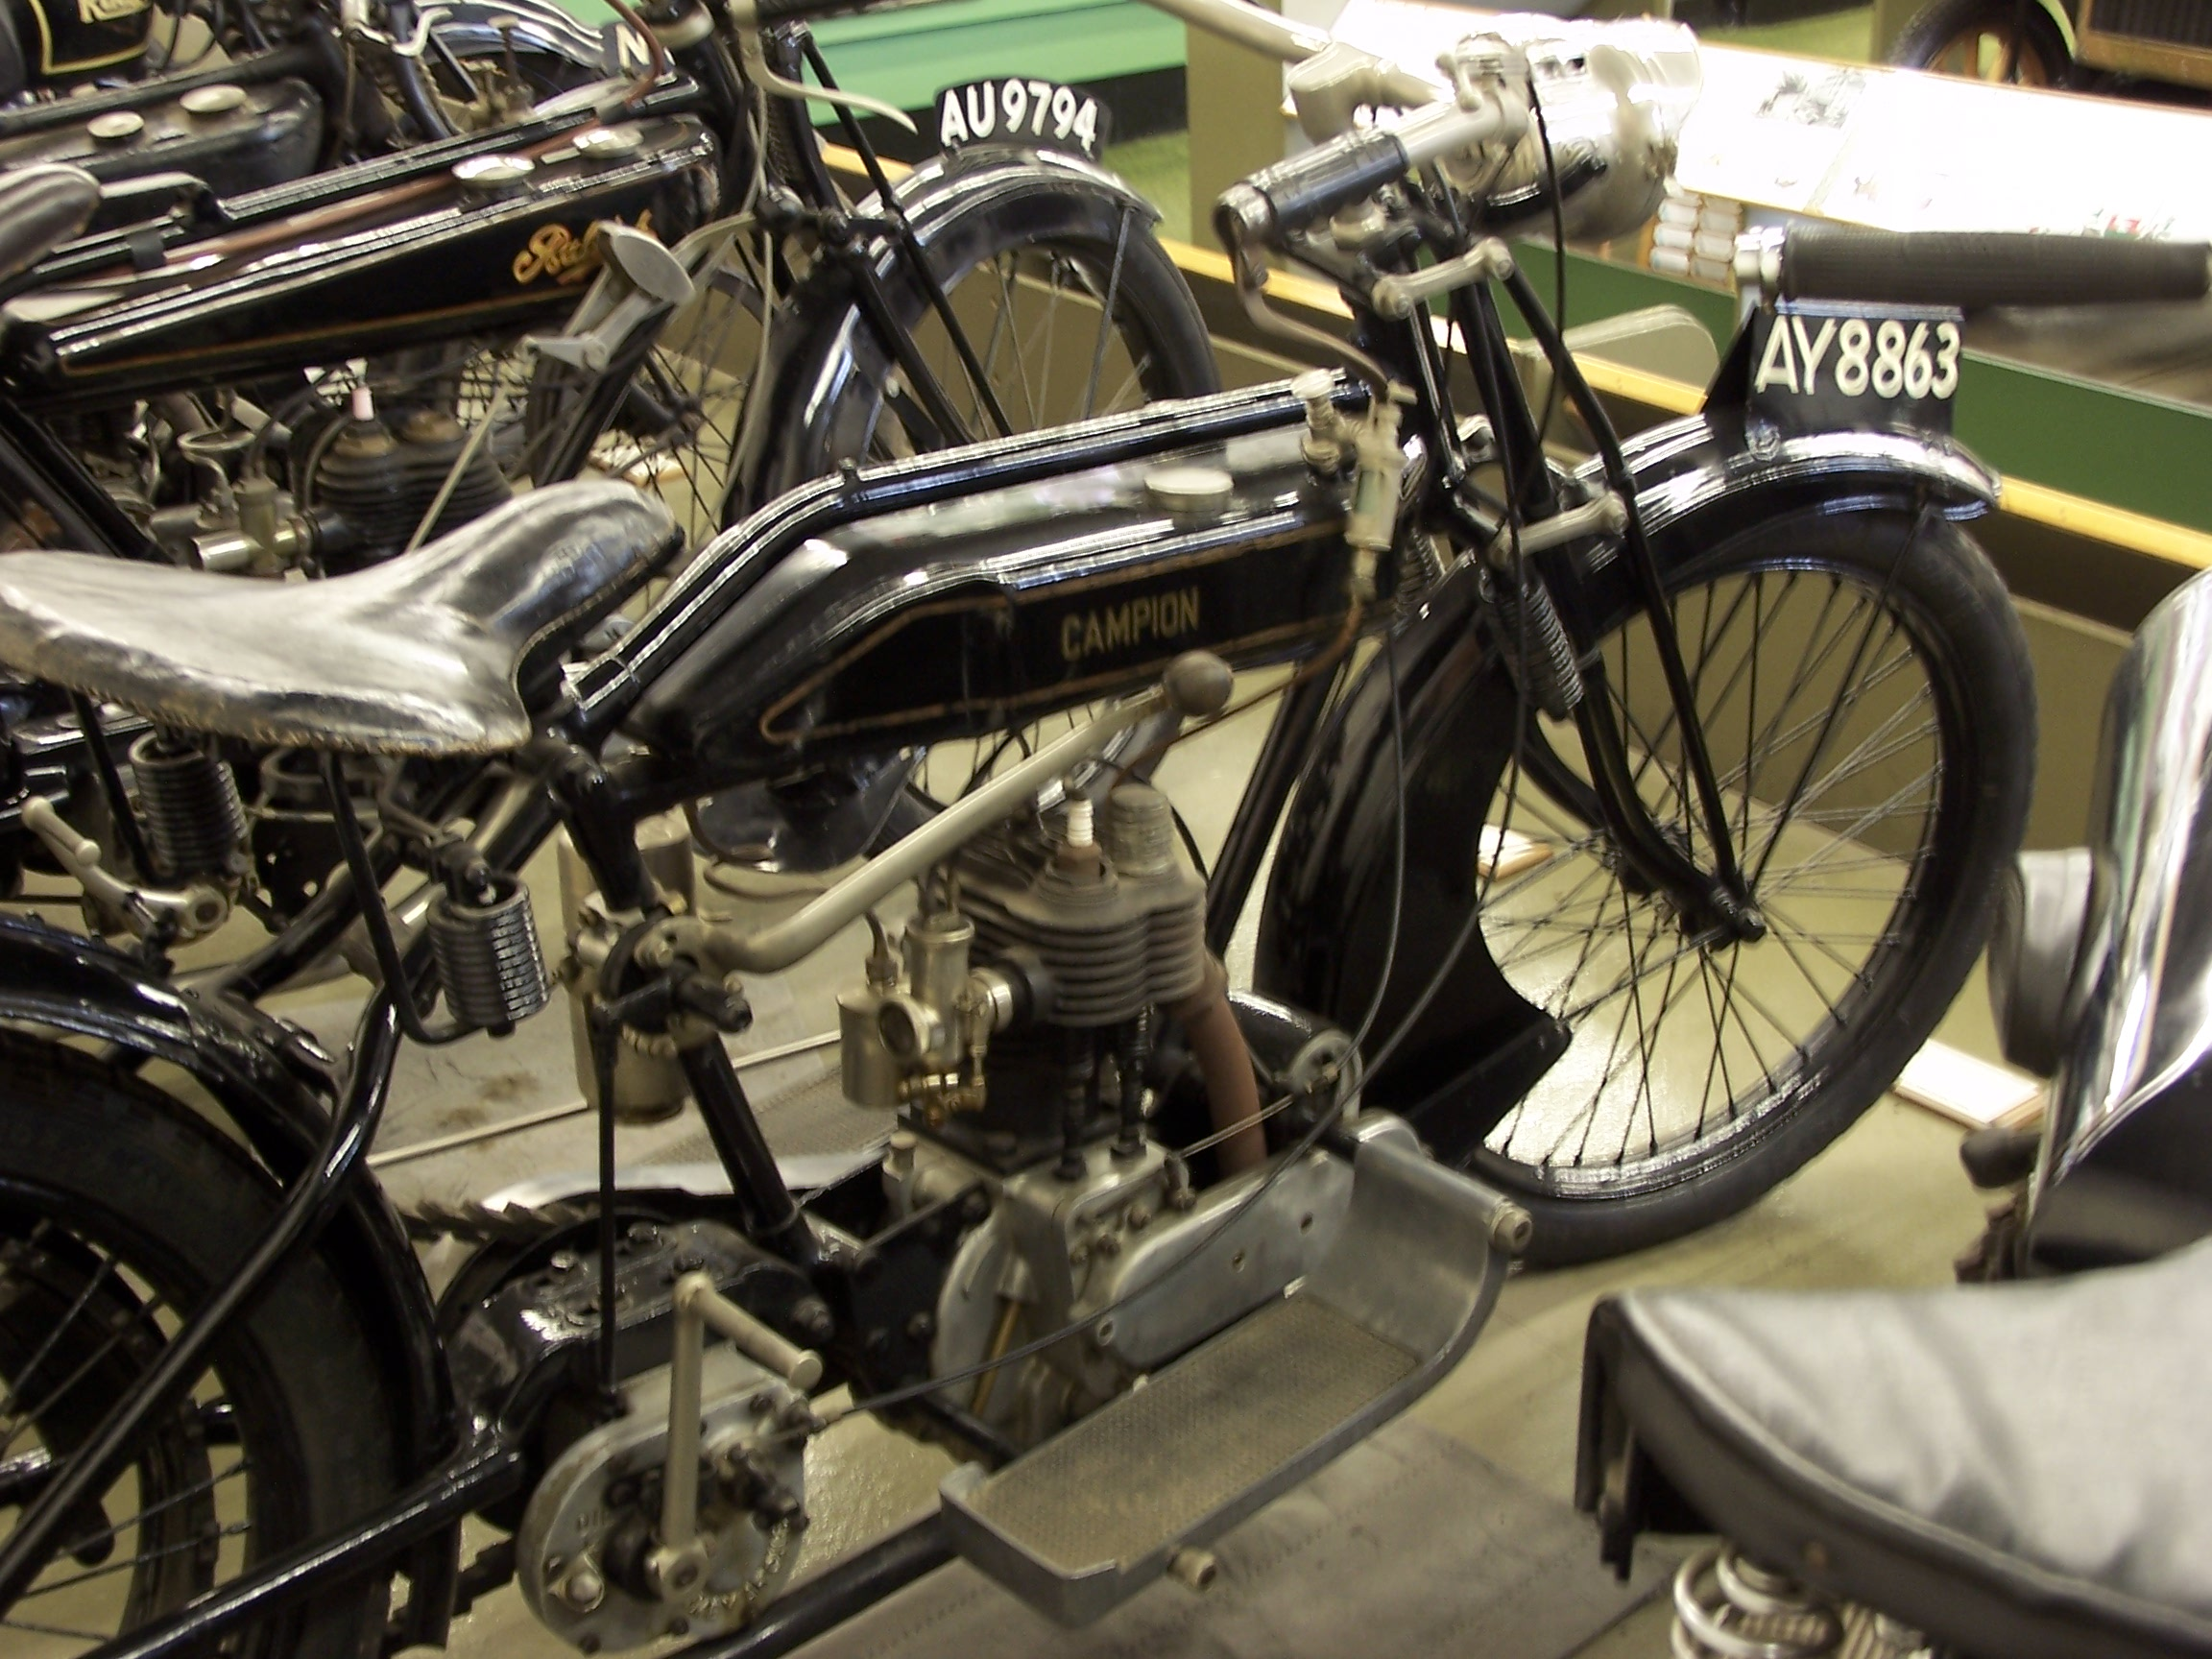 Sturmey Archer Heritage History Gear Box Of Motorcycle 1921 Campion Motorbike And Gearbox